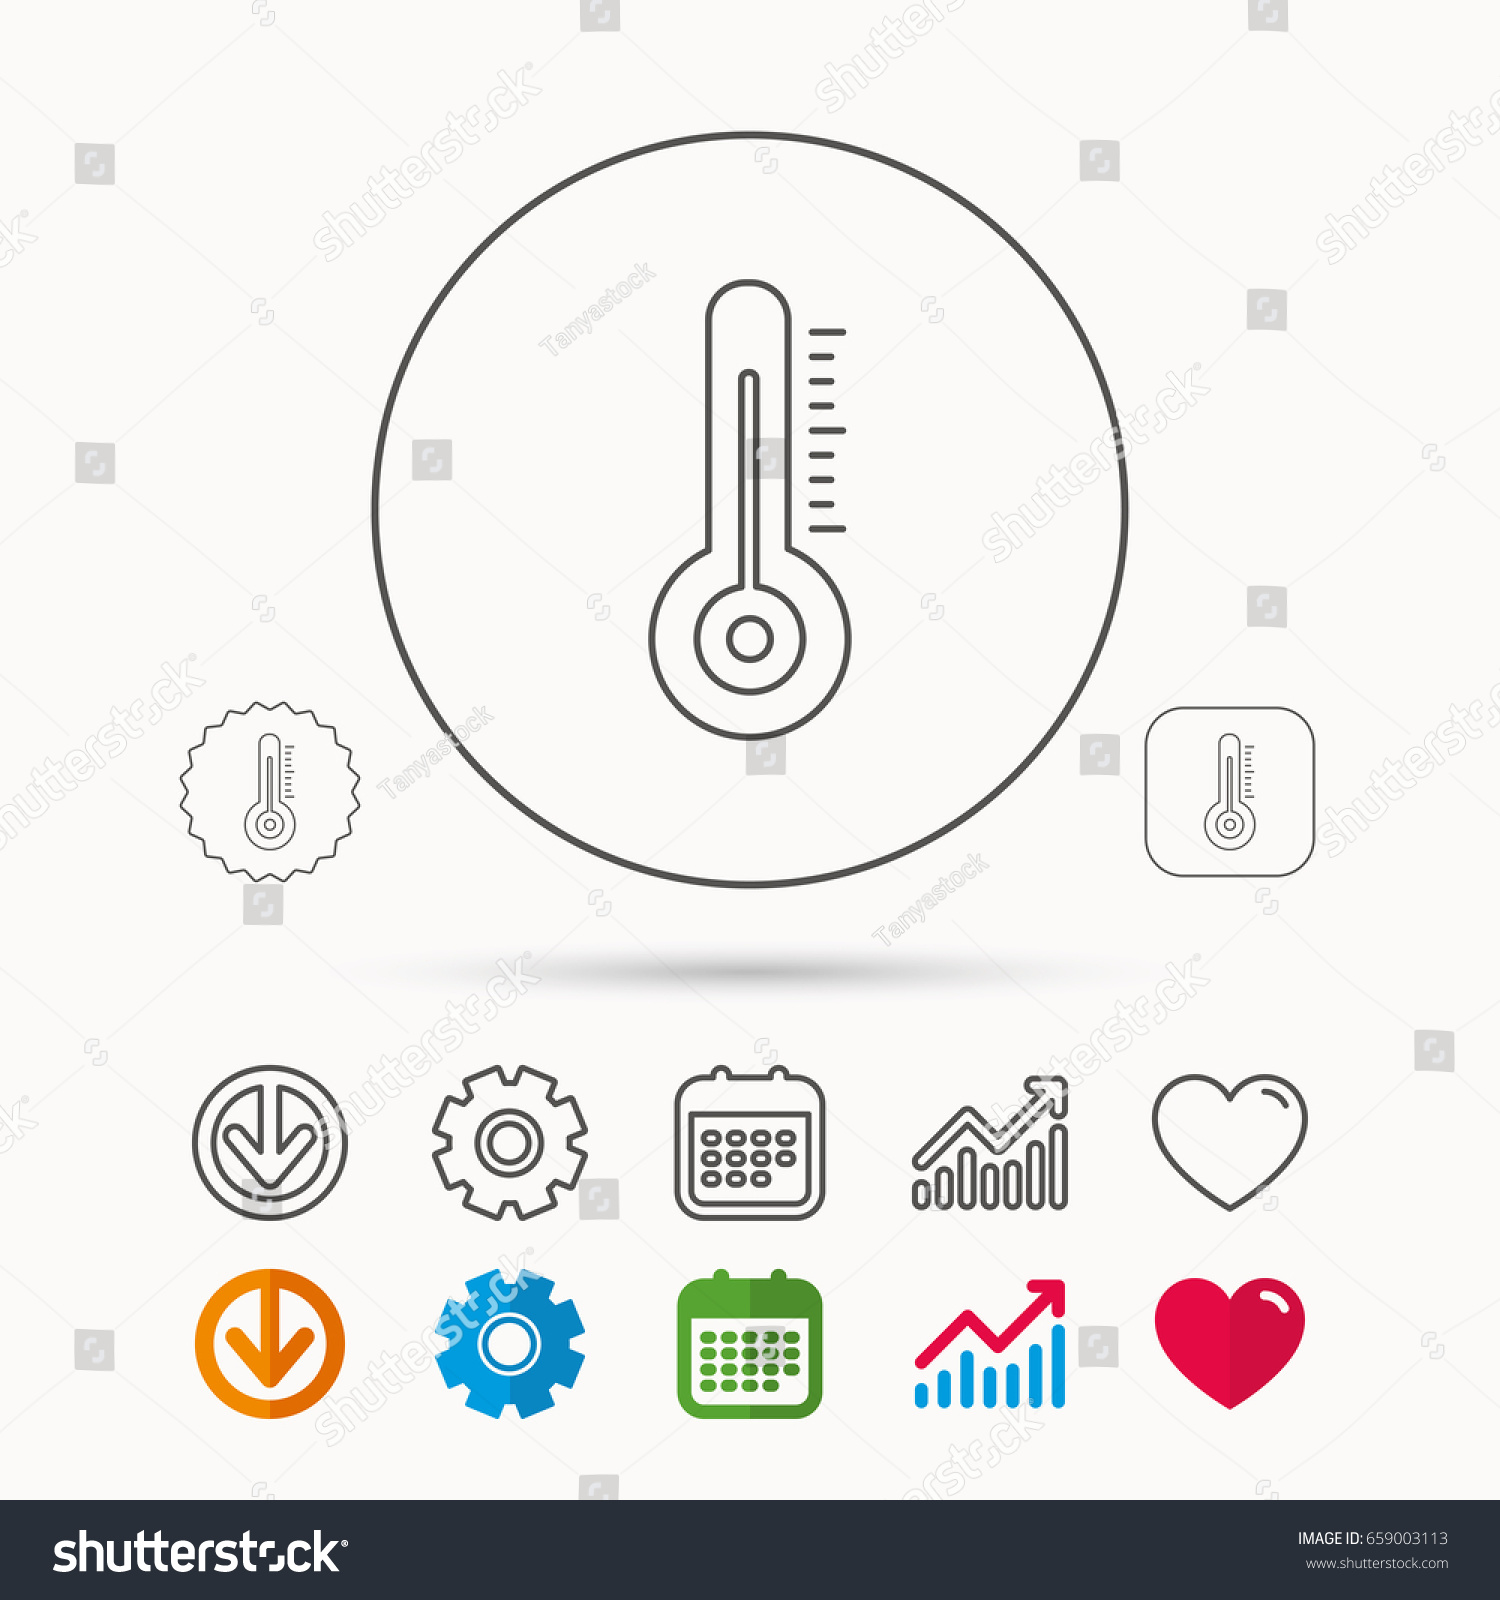 Thermometer icon weather temperature sign meteorology stock vector weather temperature sign meteorology symbol calendar graph chart and cogwheel biocorpaavc